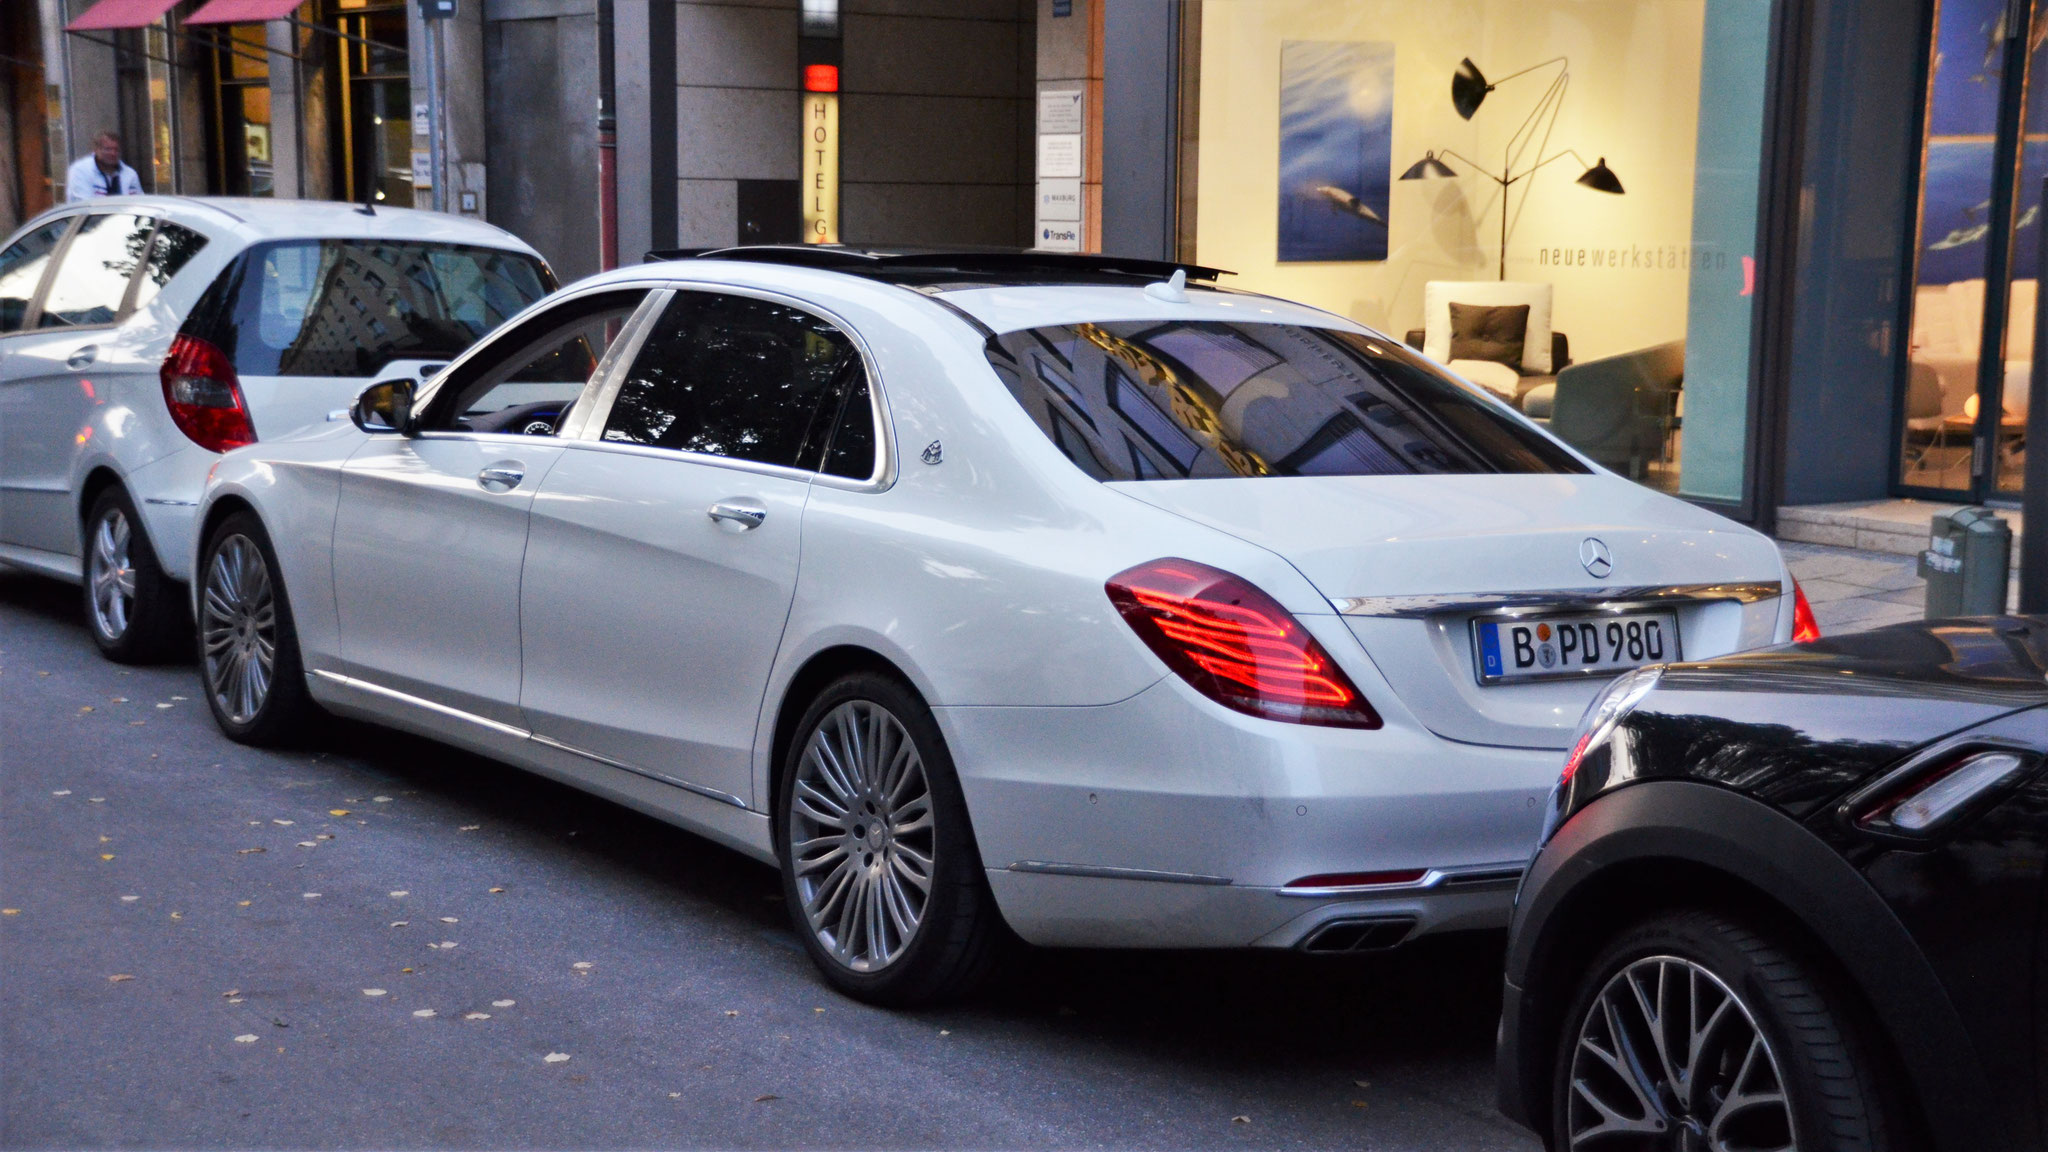 Mercedes Maybach S500 - B-PD-980